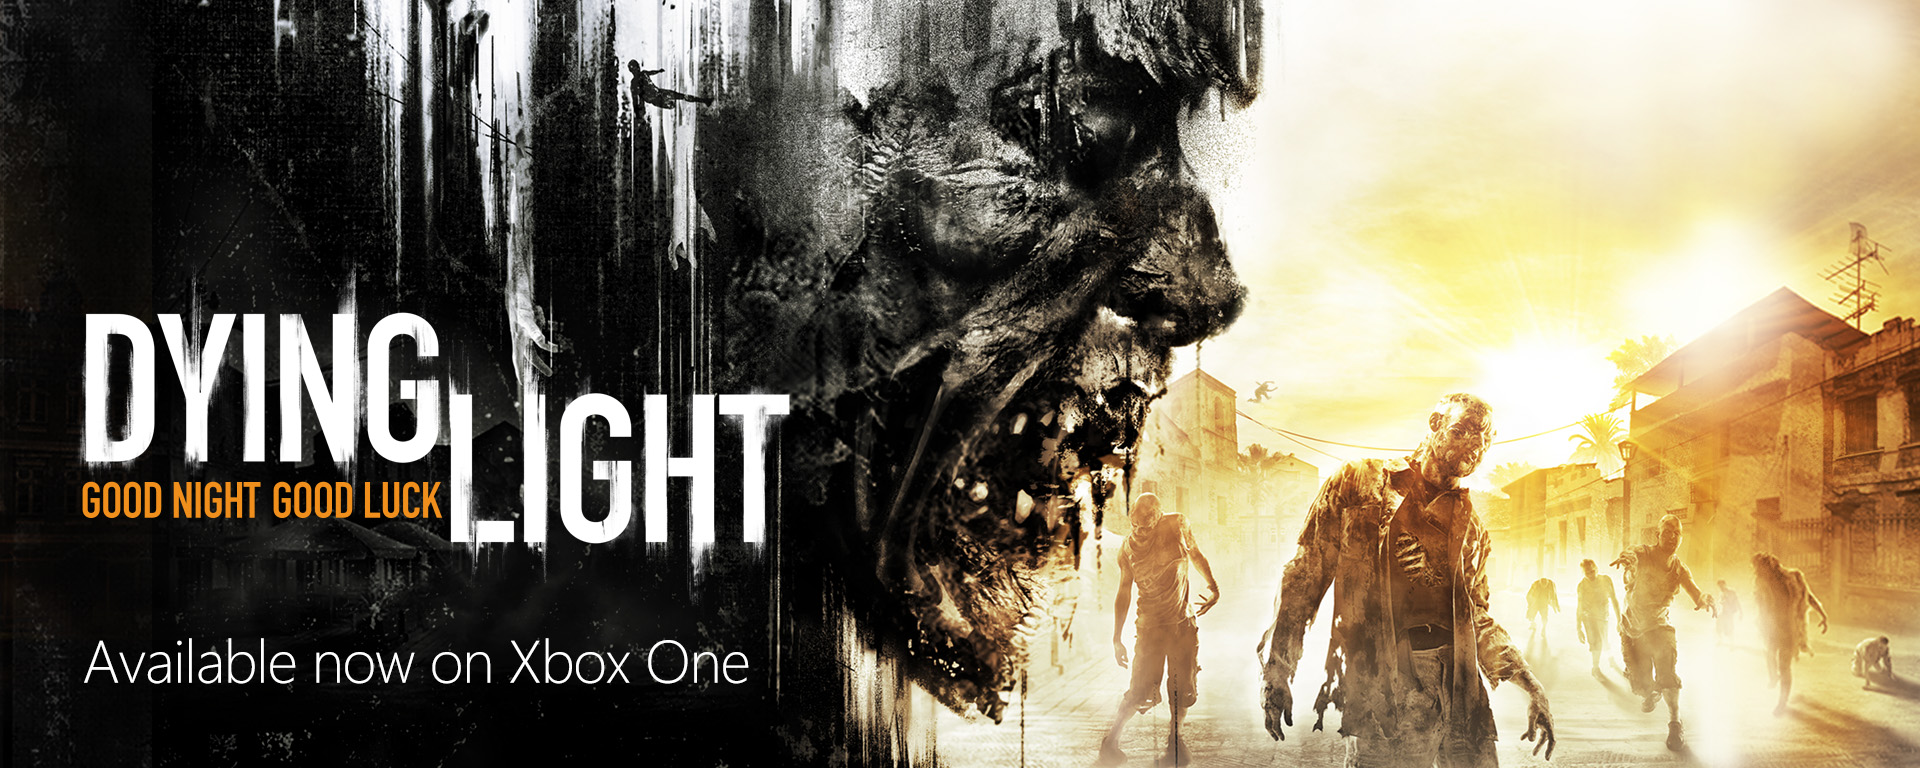 Dying light matchmaking